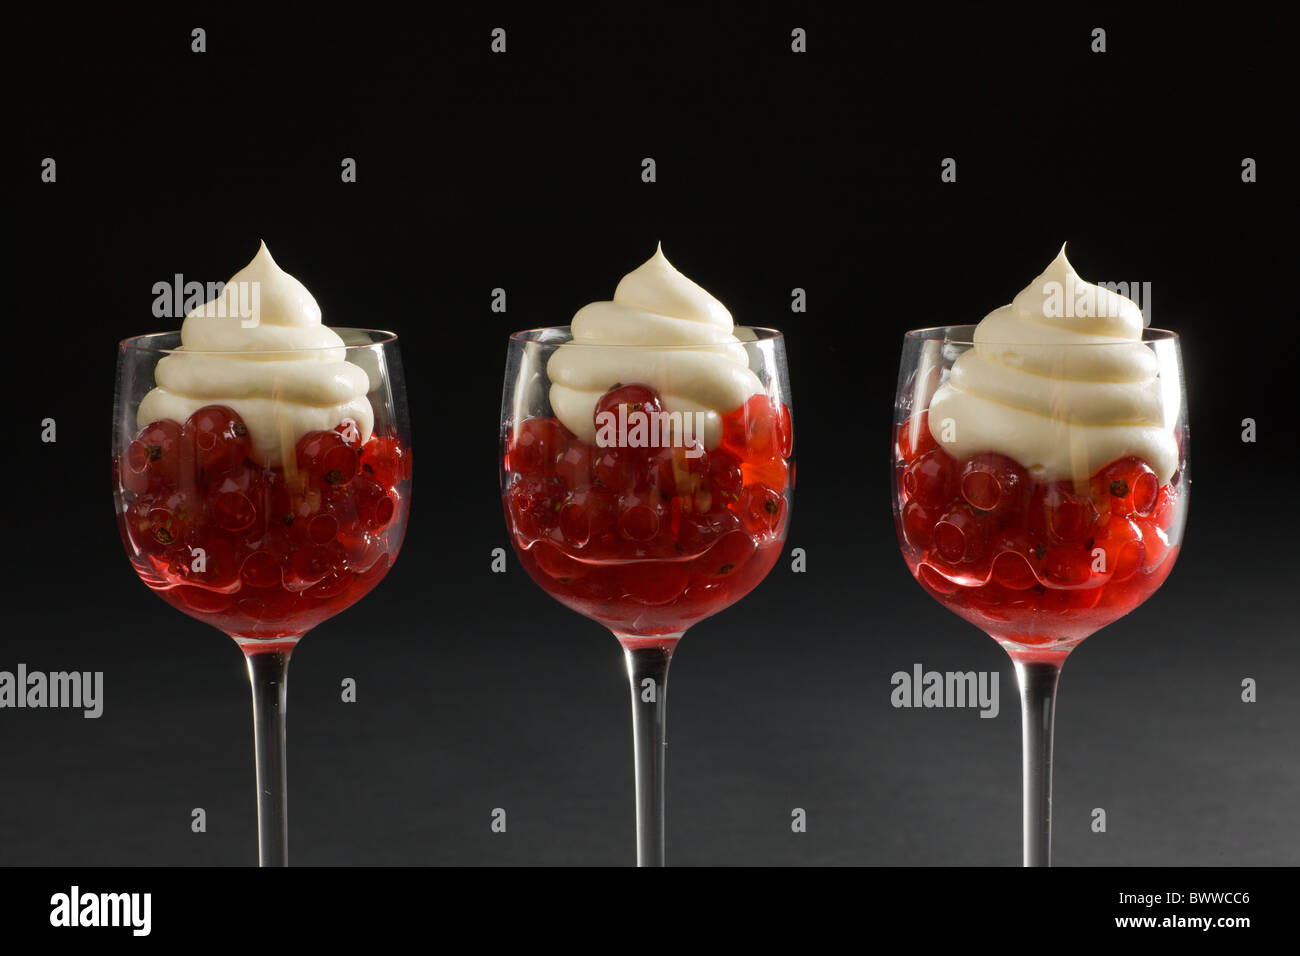 Red Currants in a Tangy Syrup in elegant stem glasses, topped with a Creamy Swirl on a dark background. - Stock Image